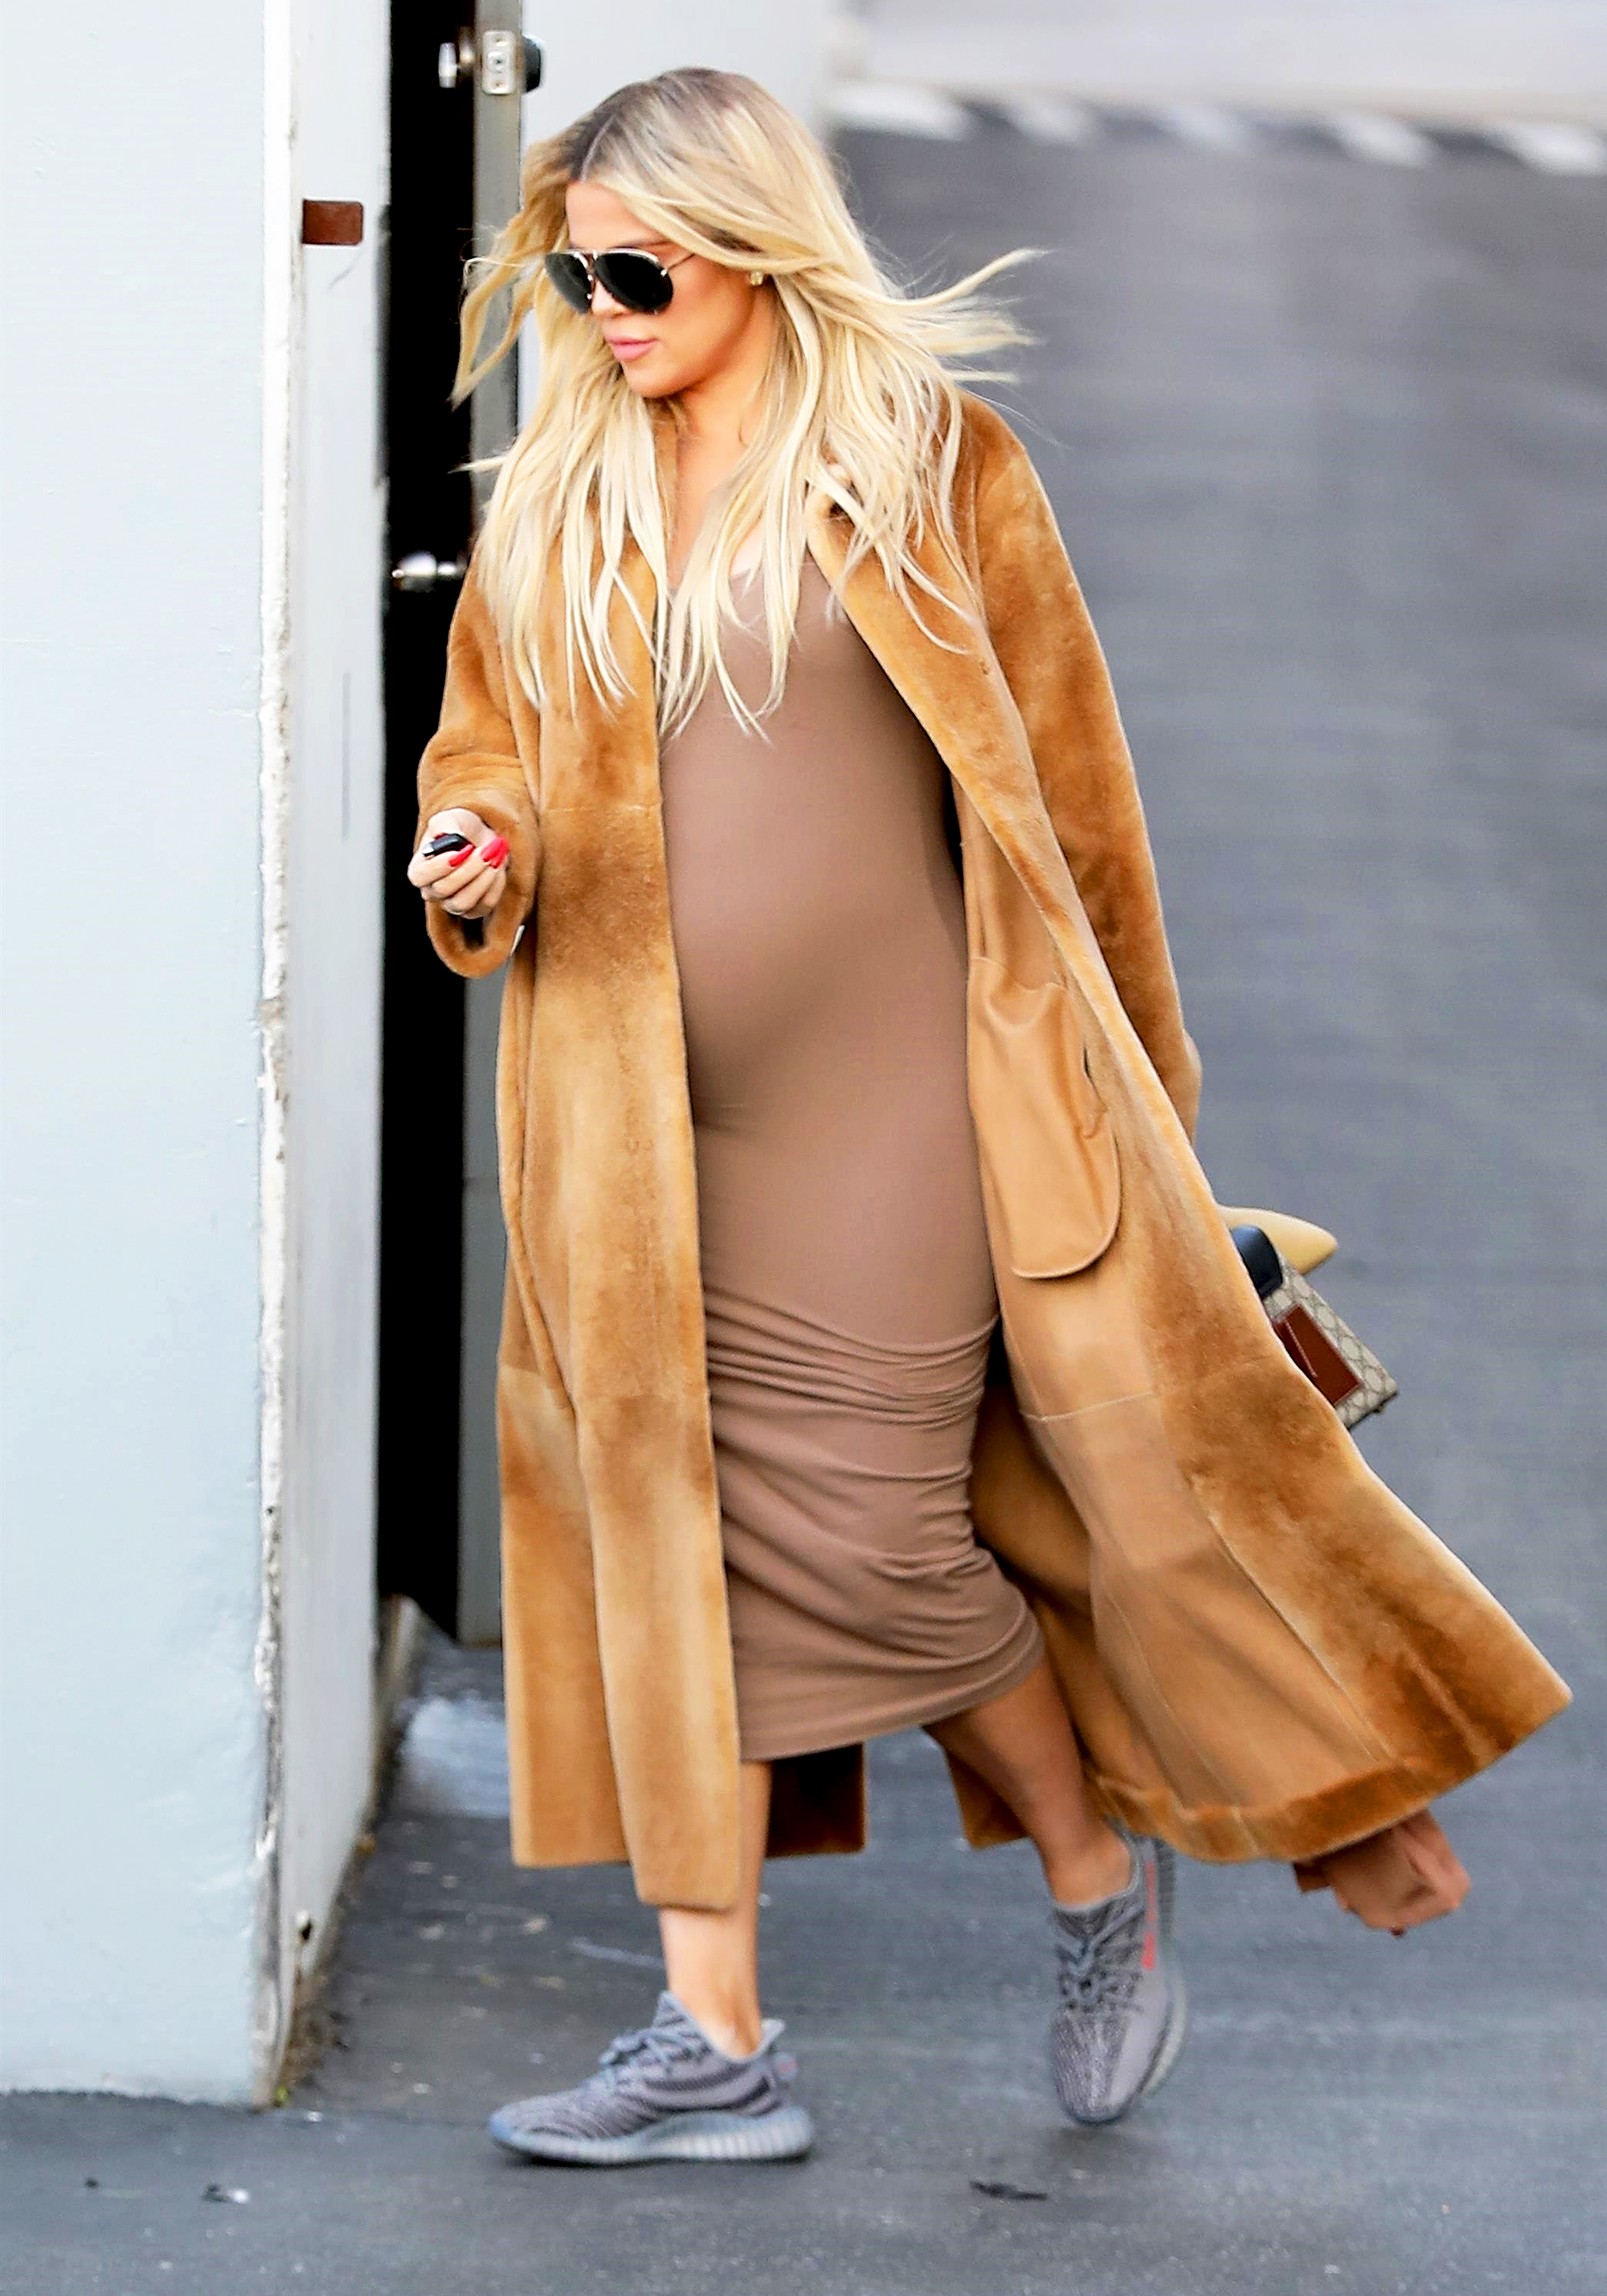 dde73a363fa64 Khloe Kardashian's Maternity Style: Her Best Pregnancy Outfits